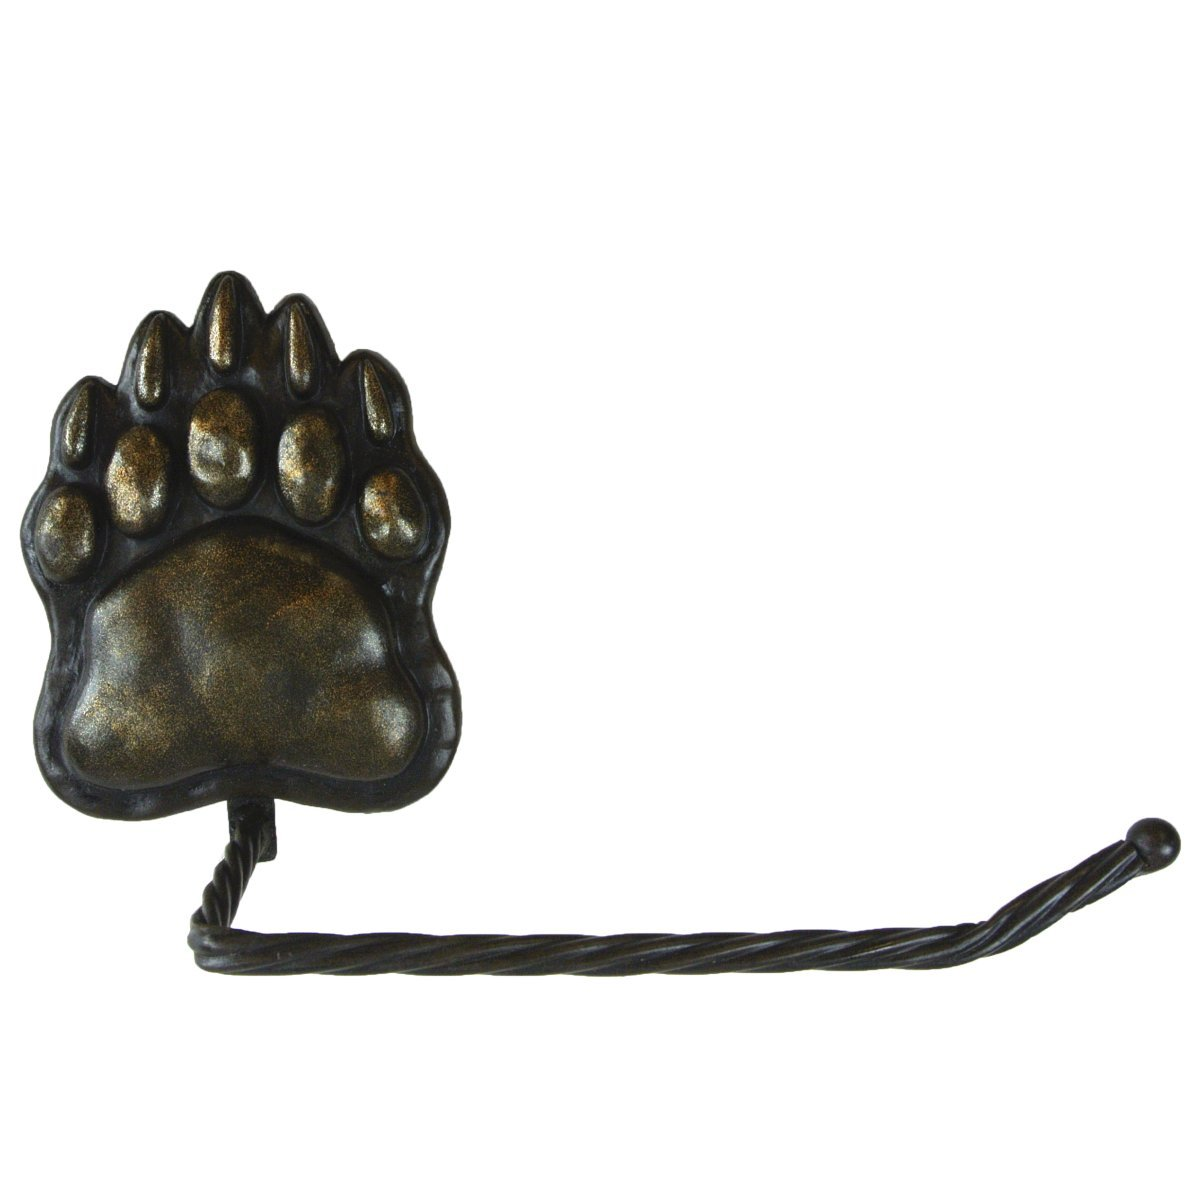 LL Home 12875 Bear Paw Toilet Paper Holder